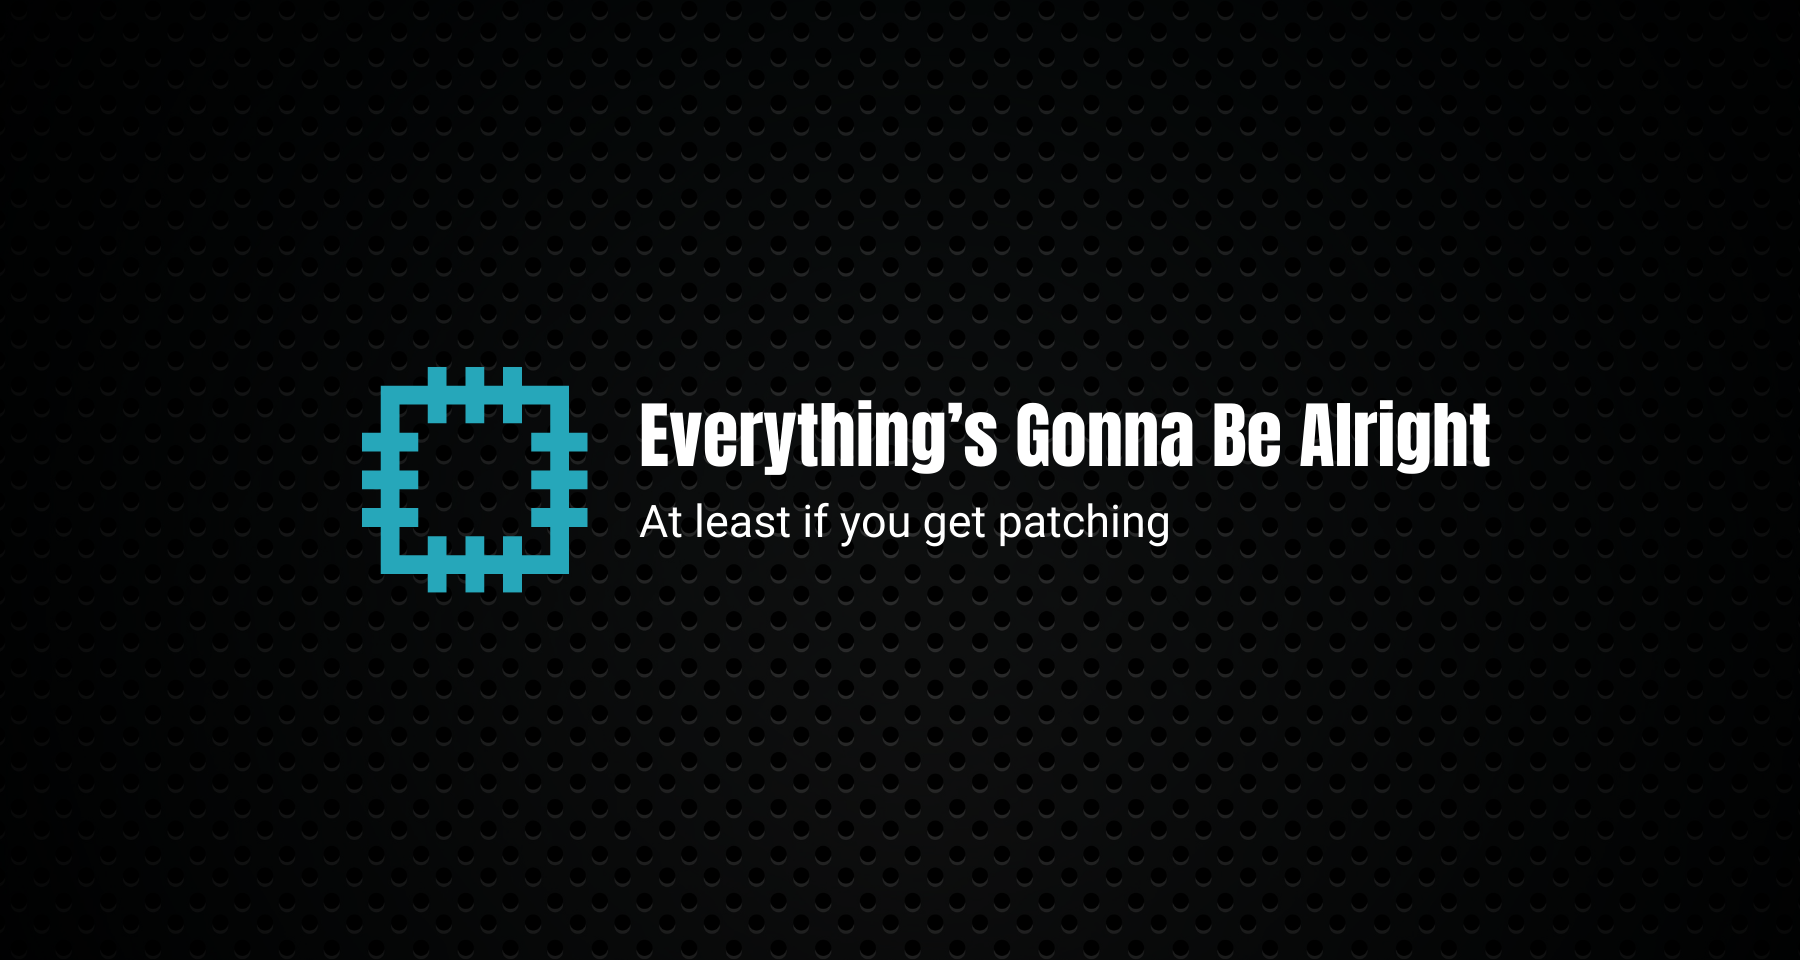 Blog - Everything's gonna be alright